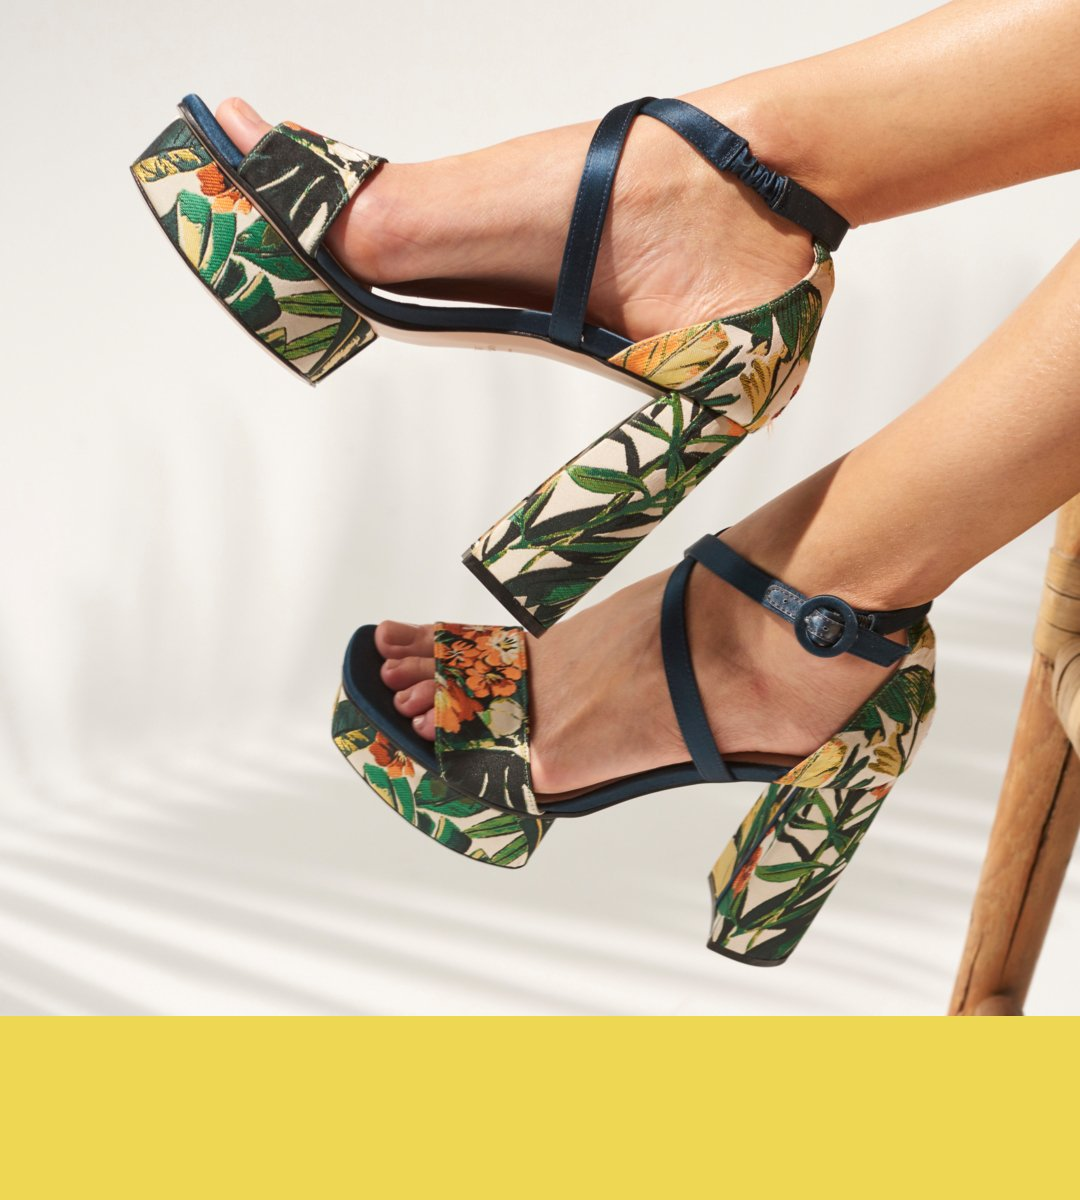 91ec87a524c Take sandals to a new level.  CARLA  StuartWeitzman https   bit.ly 2pwGeQv  pic.twitter.com QJzwp1nRvg